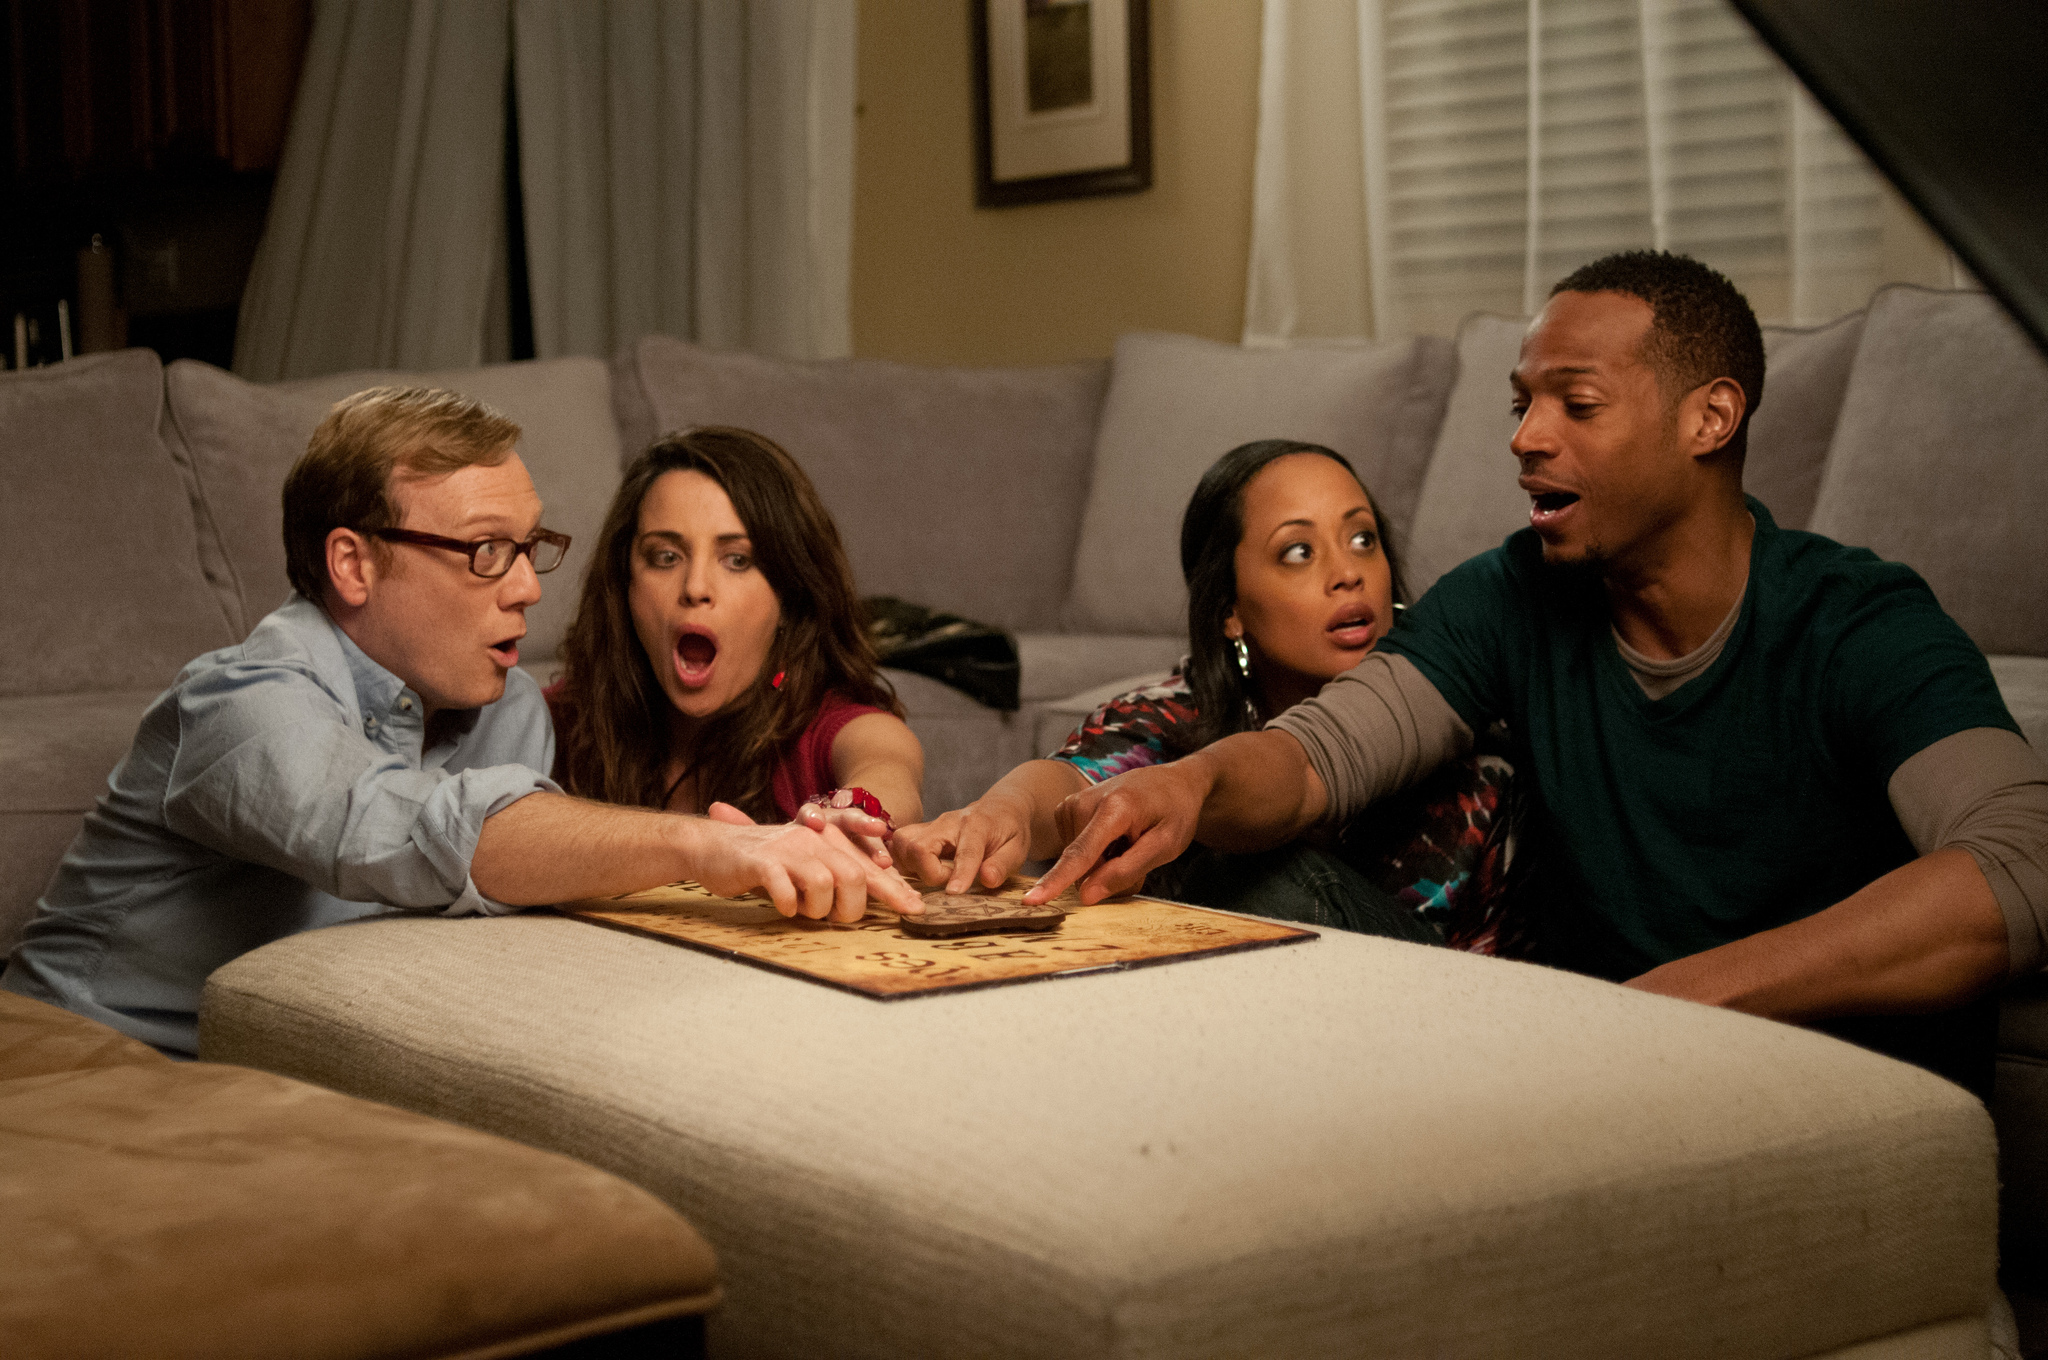 Alanna Ubach, Marlon Wayans, Essence Atkins, and Andrew Daly in A Haunted House (2013)